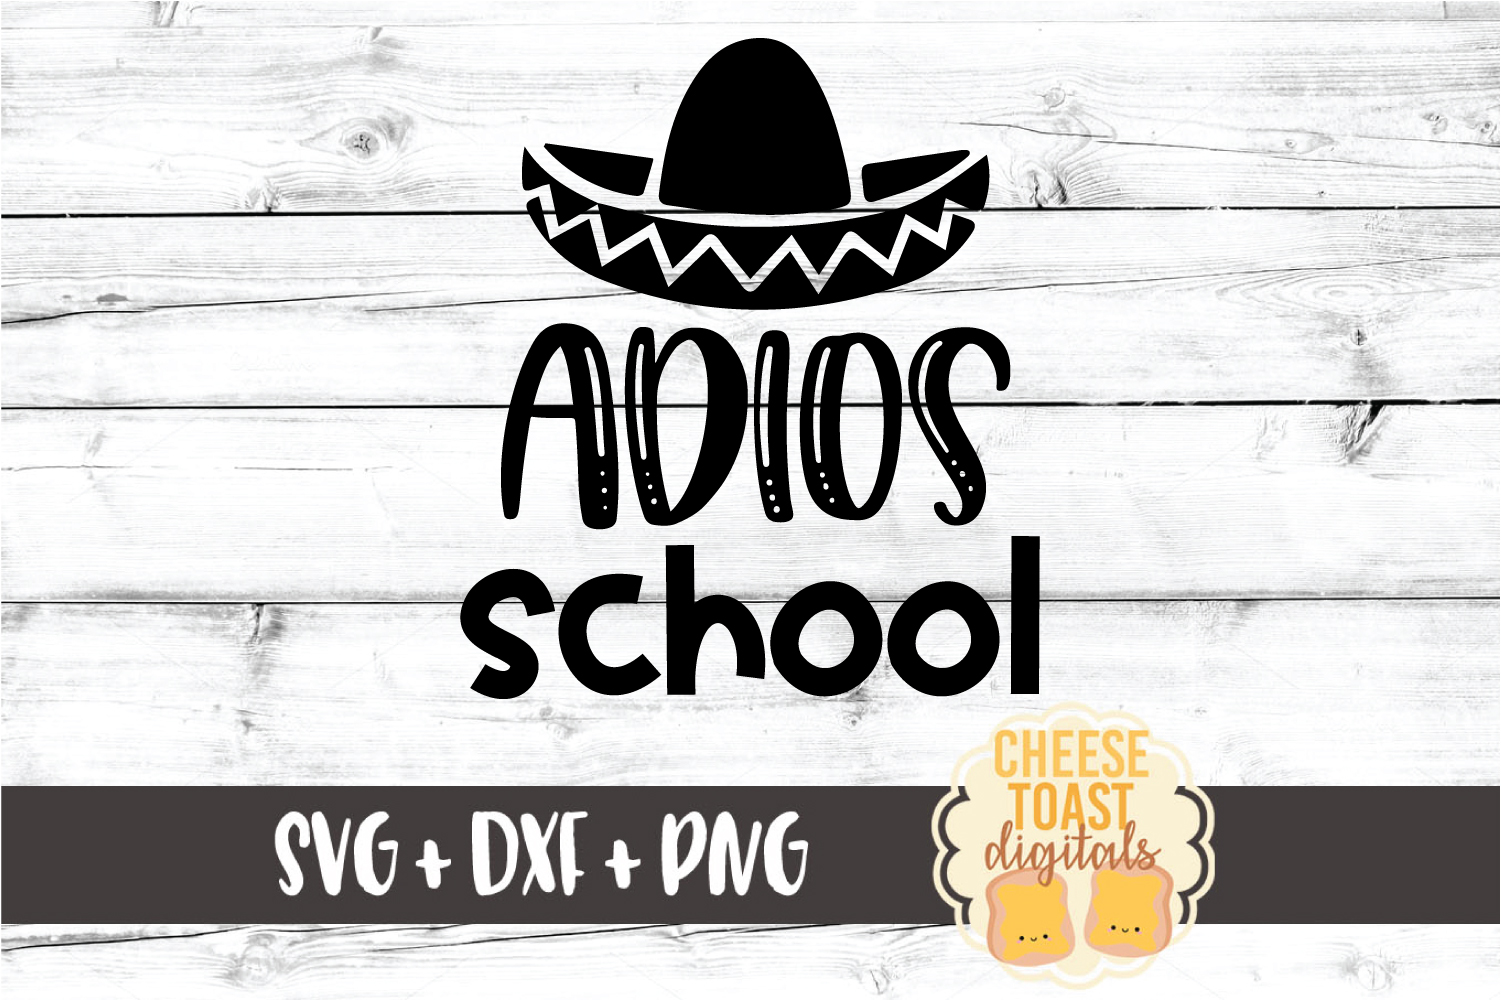 Adios School - Last Day of School SVG PNG DXF Cut Files example image 2